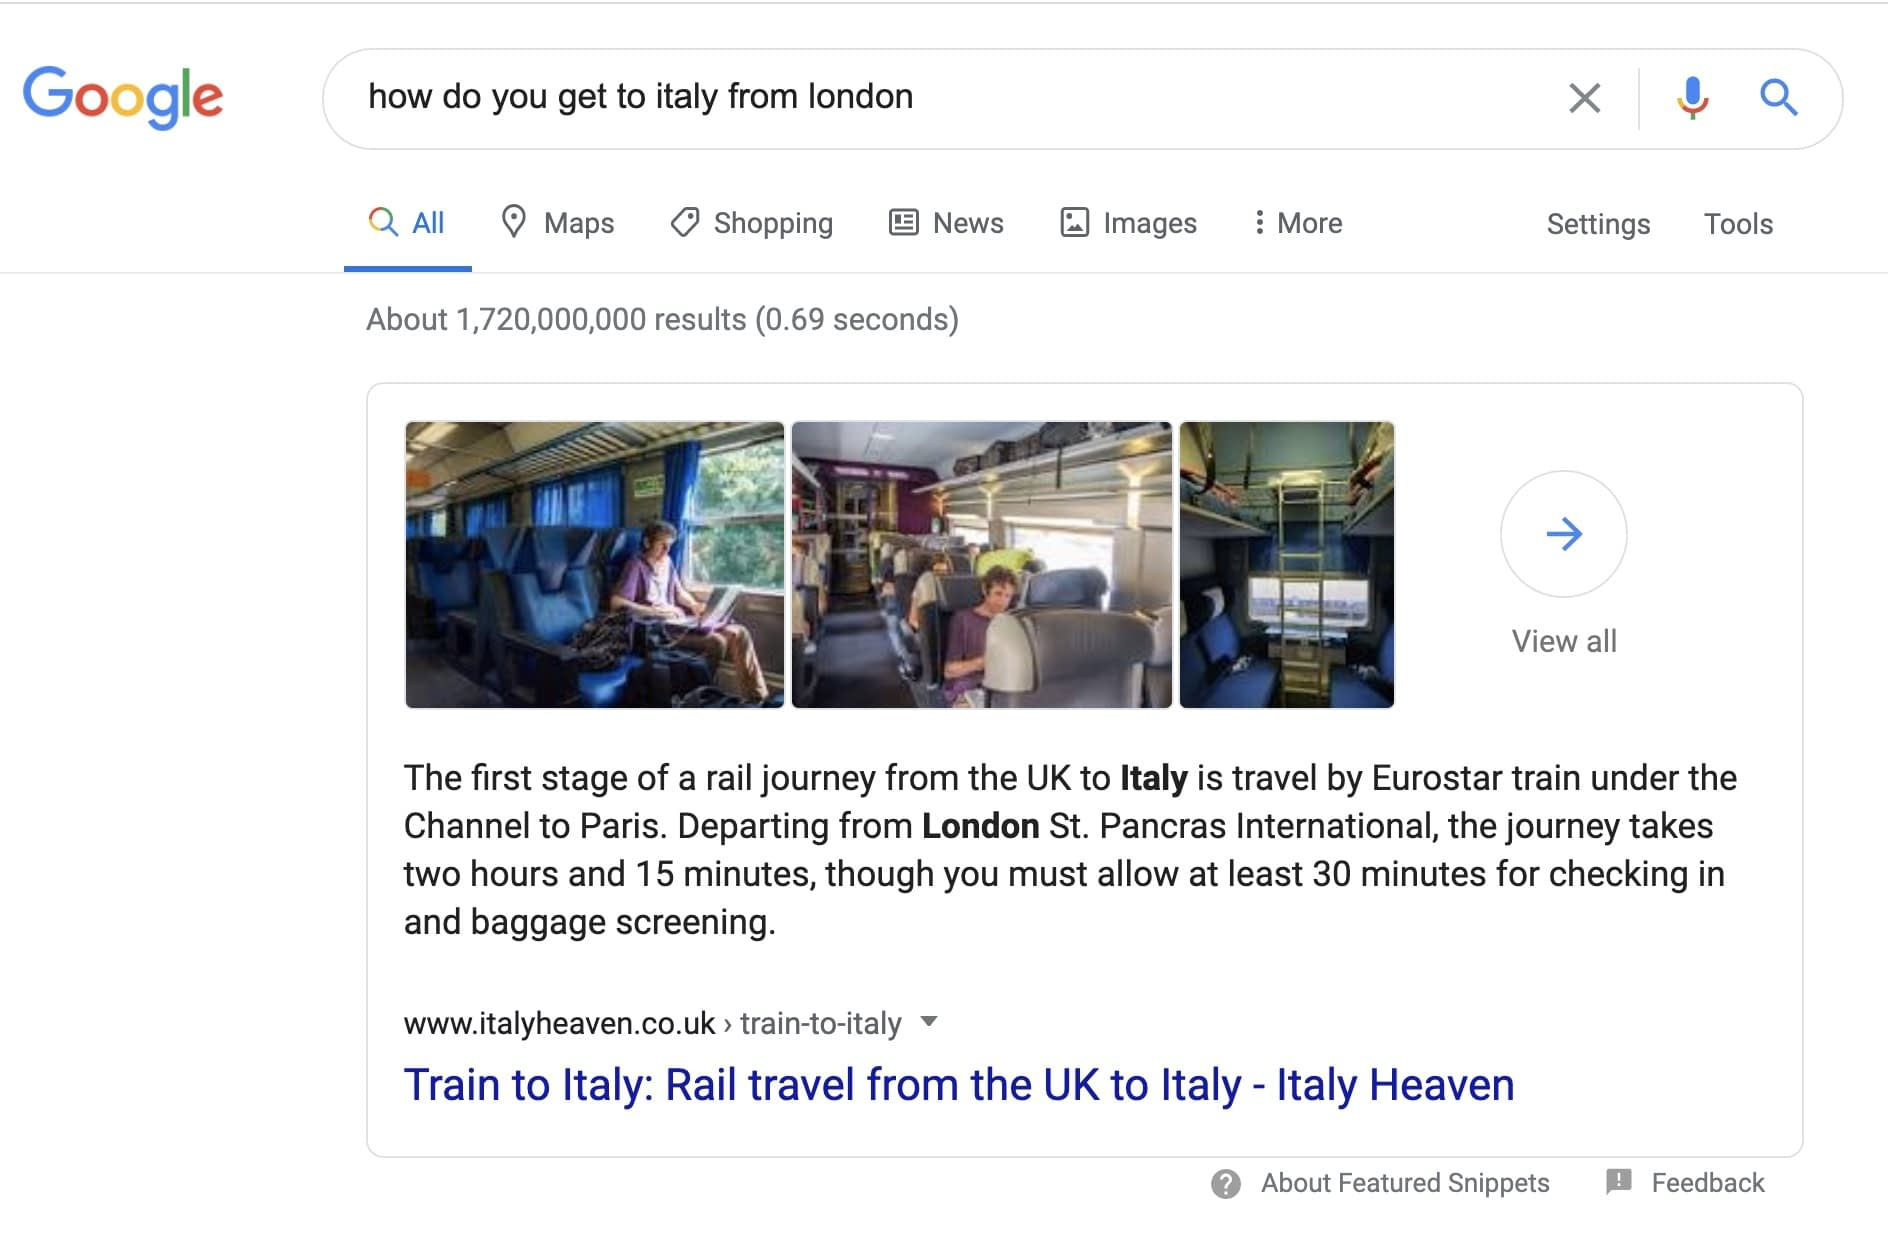 How do you get to italy from london is typed into a search engine and a featured snippet from a blog post appears with a showcase of images.